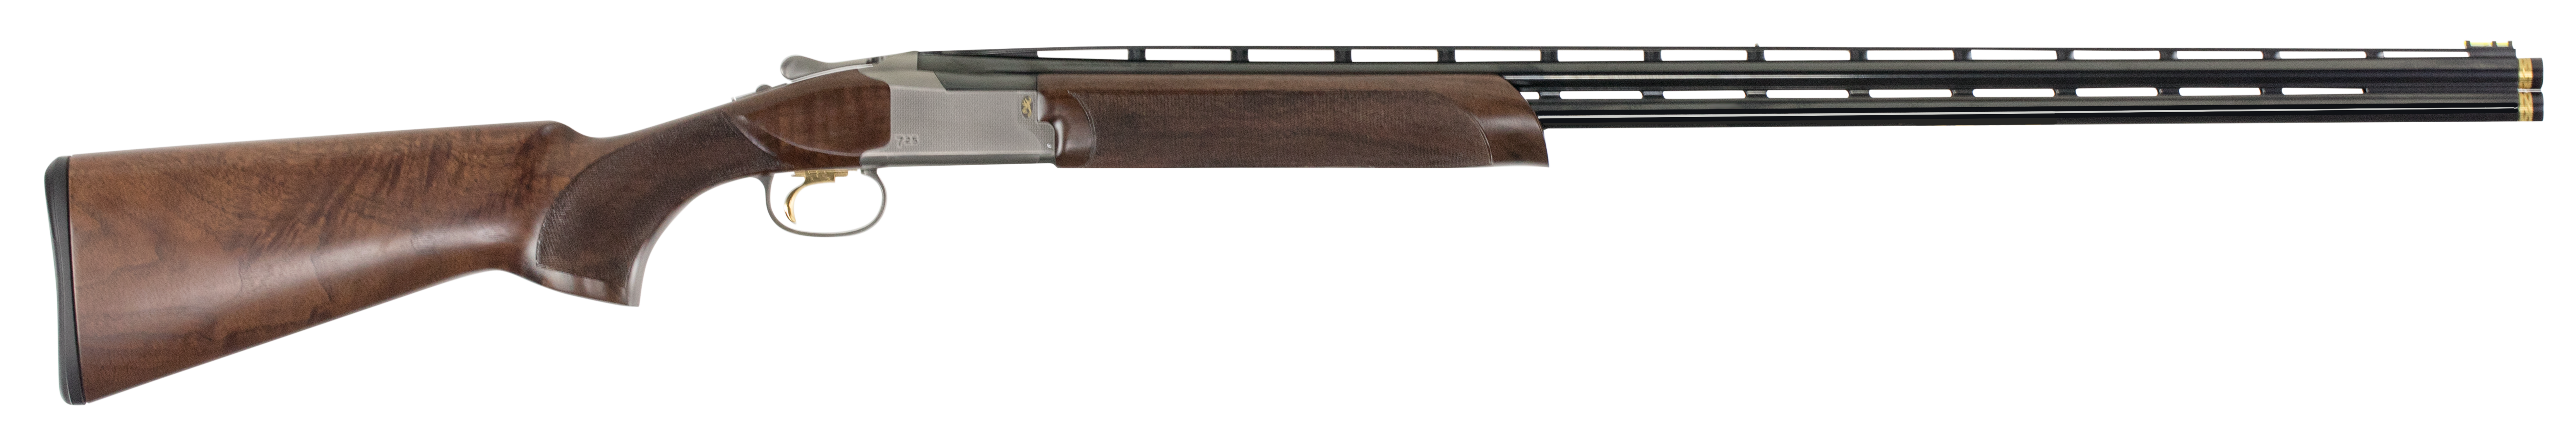 Browning Citori 725 Sporting Over/Under Shotgun 3'' 410 Bore 32'' Silver Nitride Steel/Blued Barrel - Grade III Gloss/Grade IV Walnut